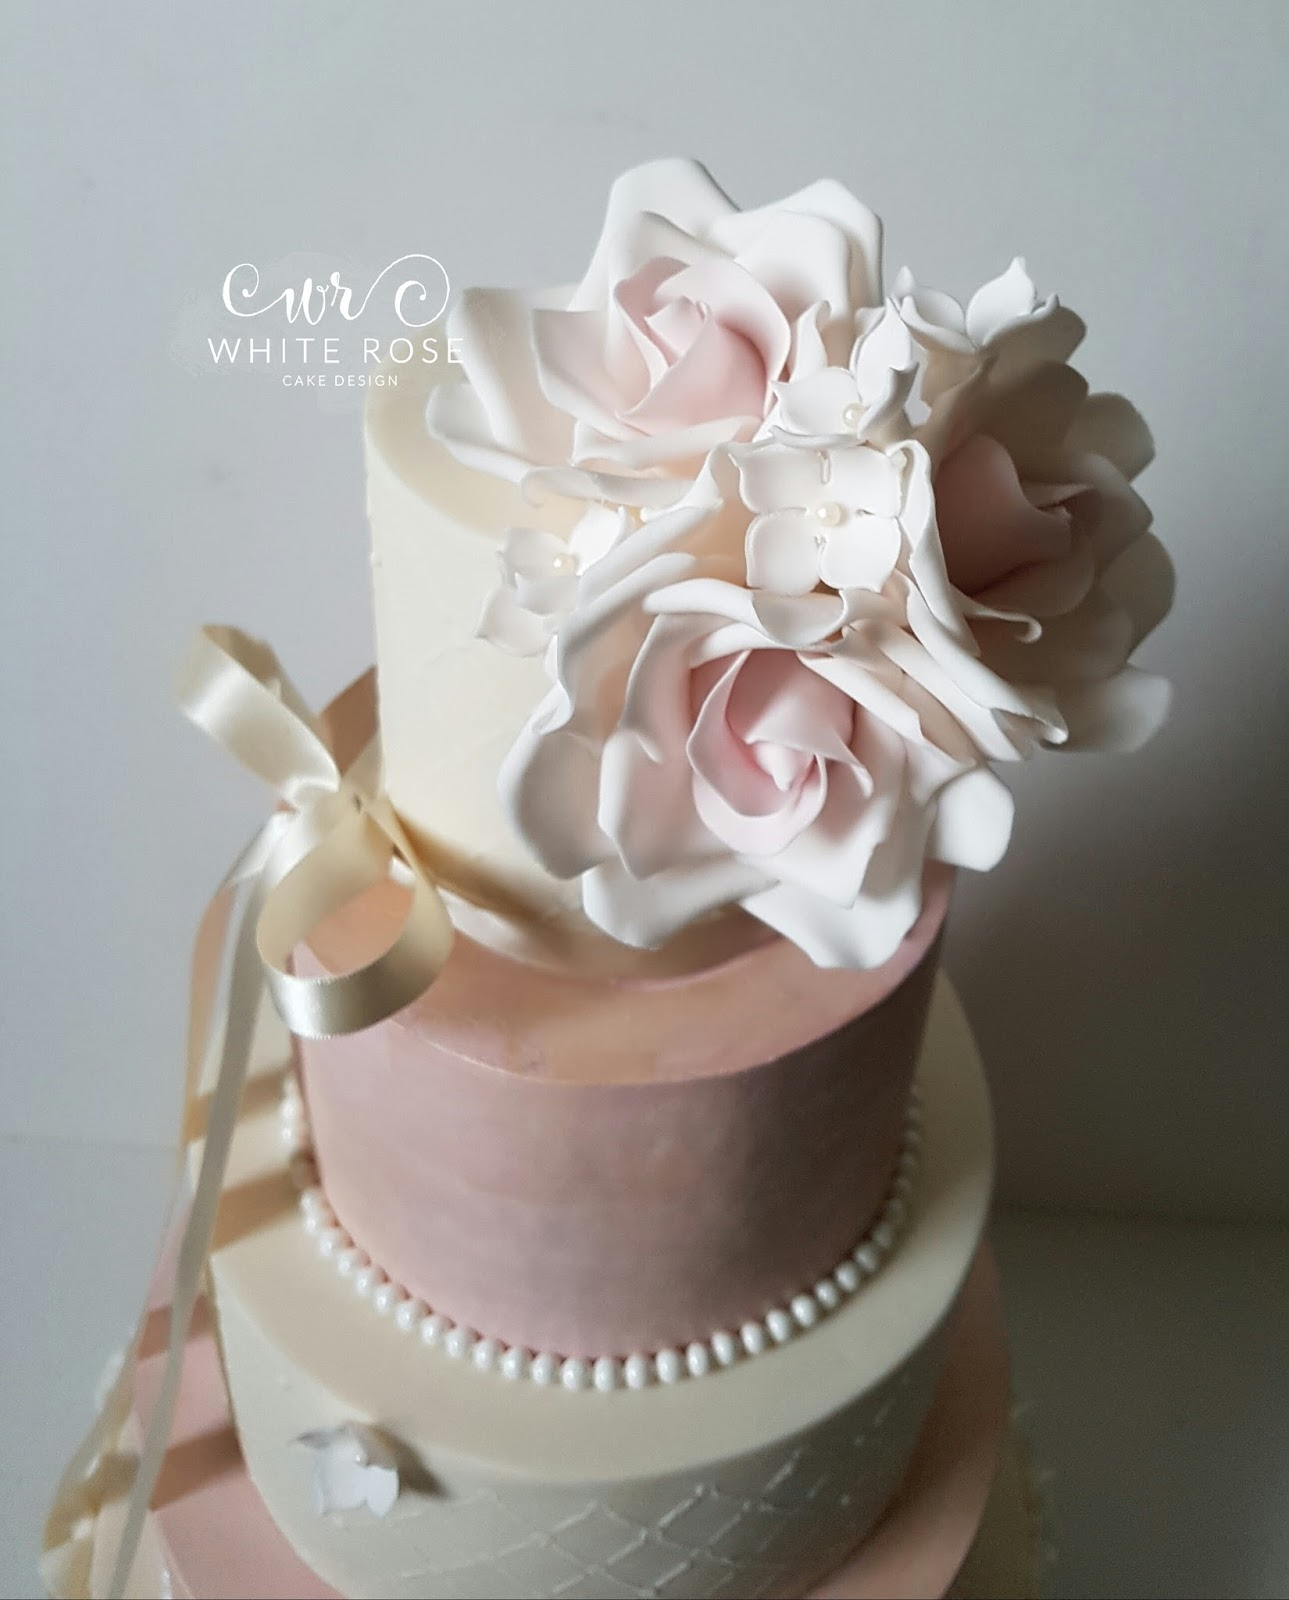 White Rose Cake Design: Ballet Inspired Five Tier Wedding Cake with ...